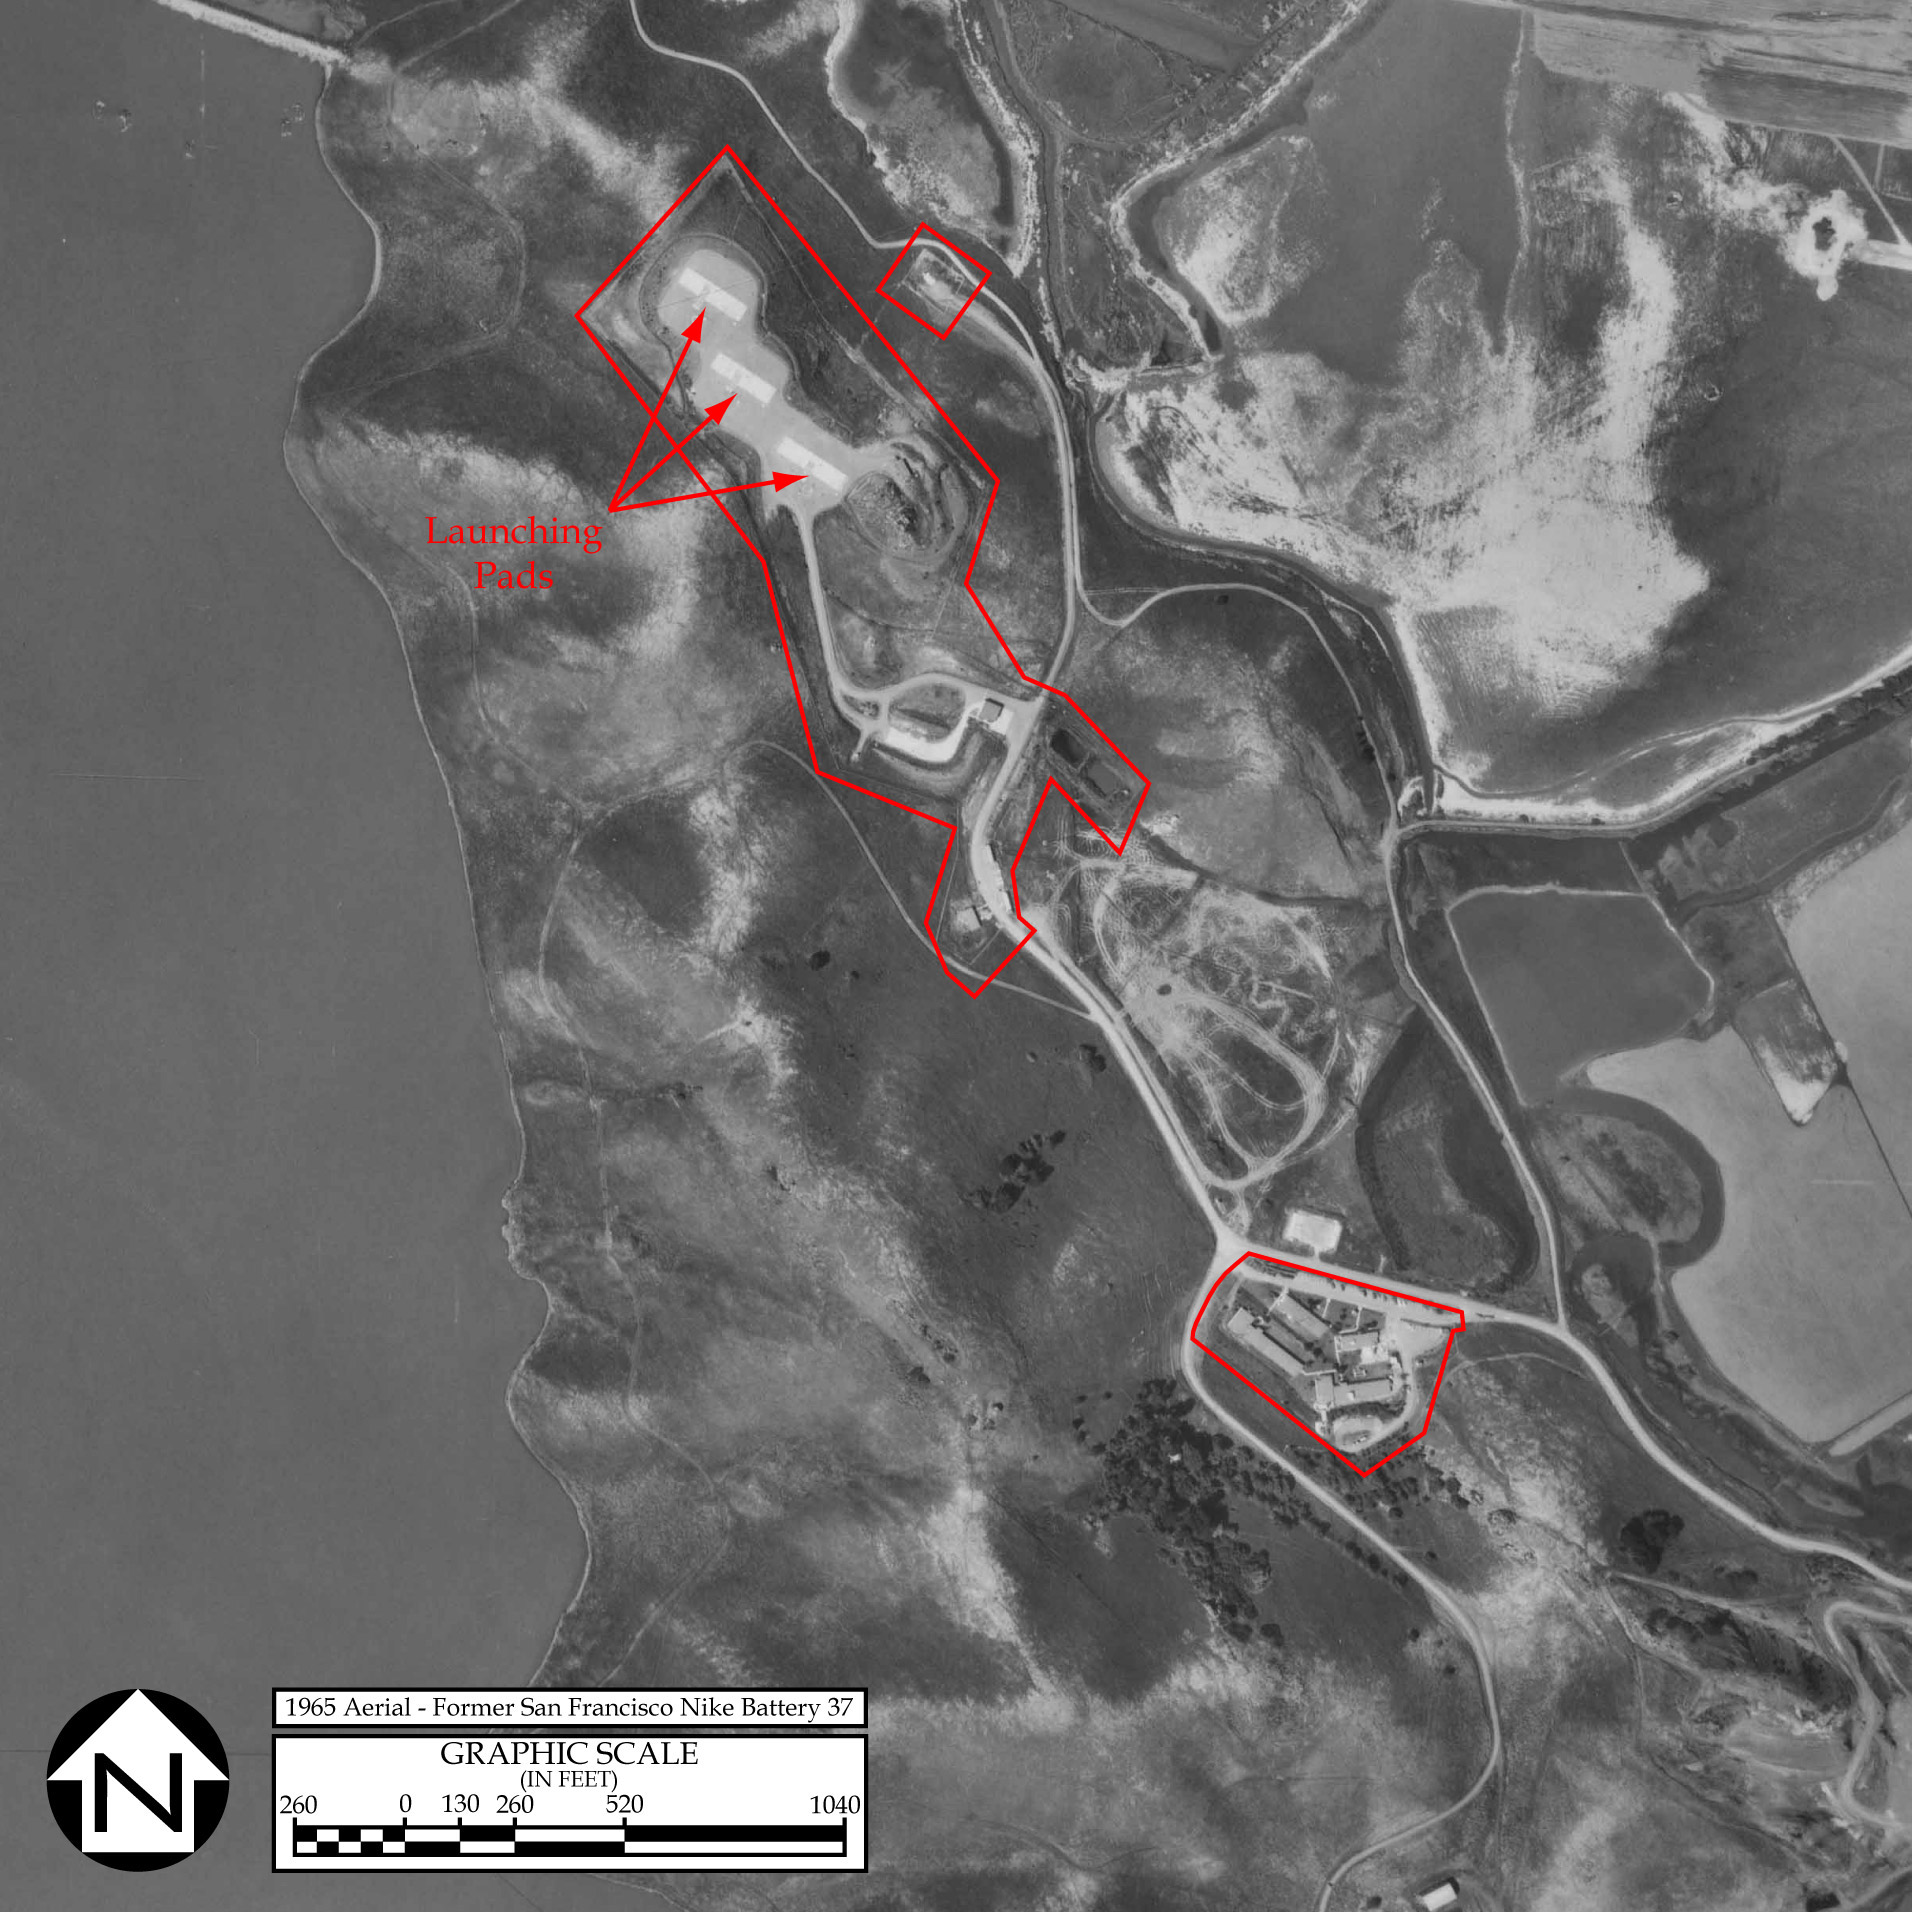 A 1965 aerial showing the Administrative and Launch sections of the Nike missile facility at Coyote Hills (MilitaryMuseum.org).